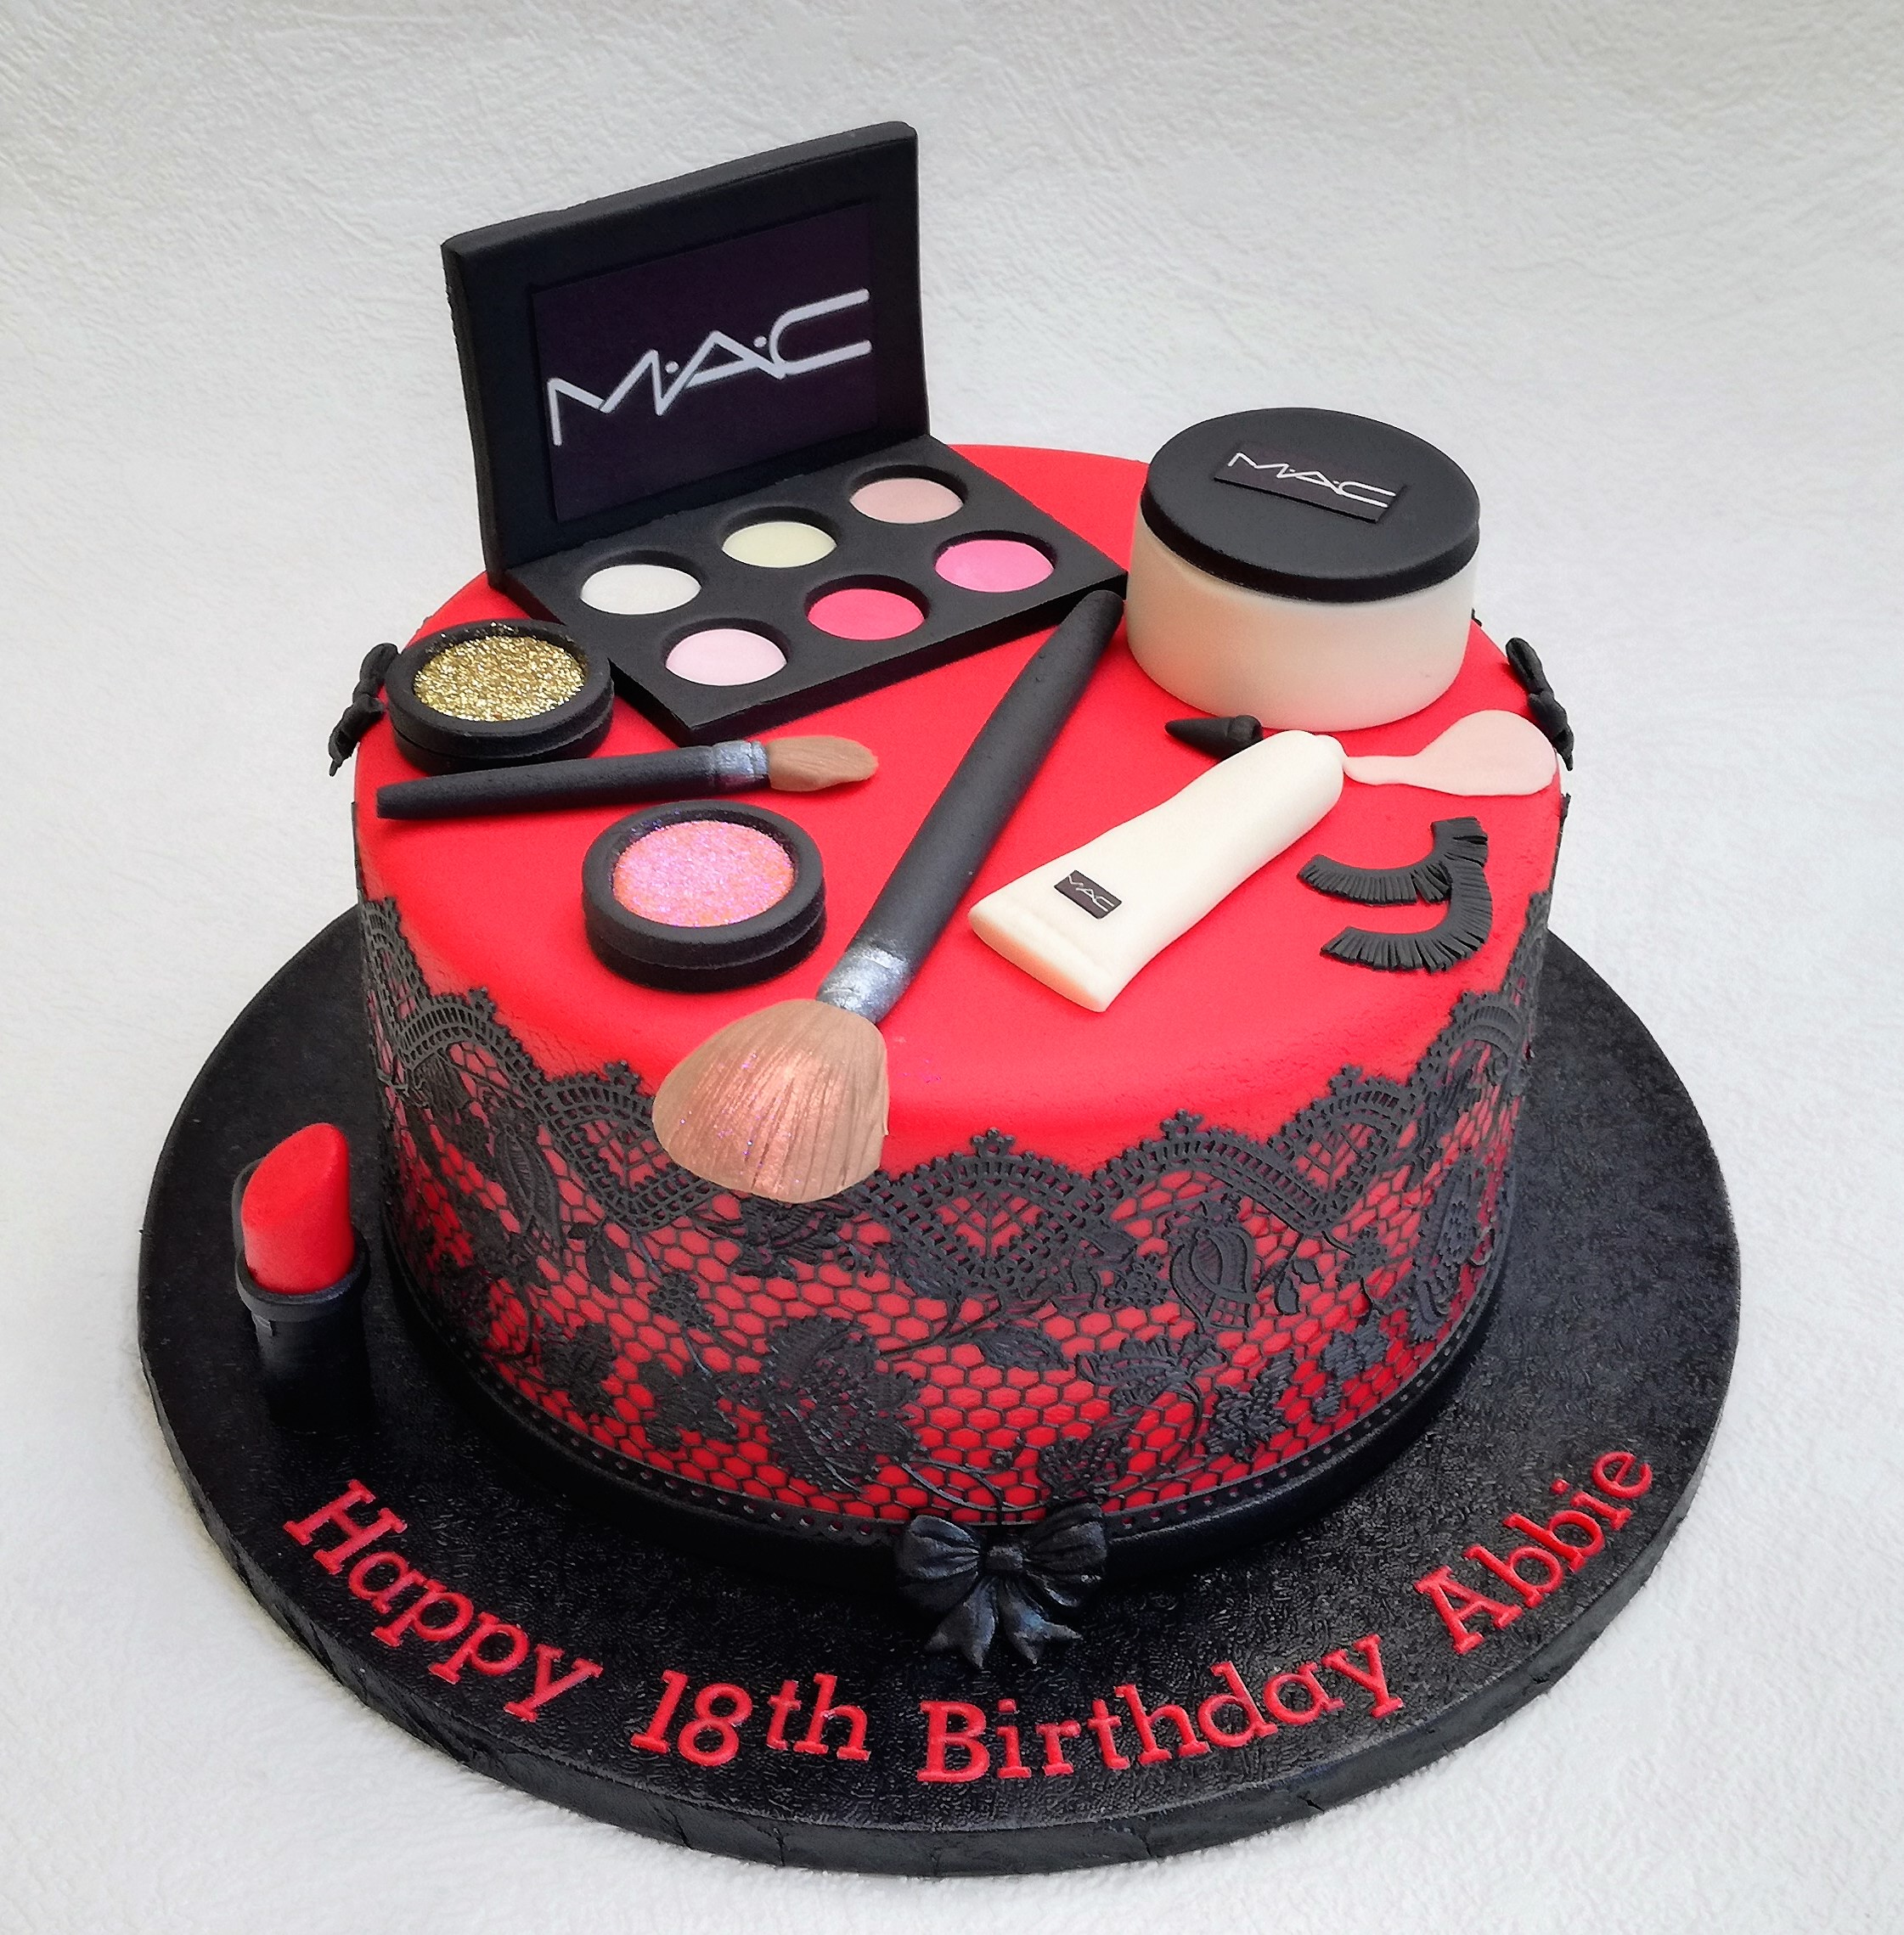 Red MAC makeup cake